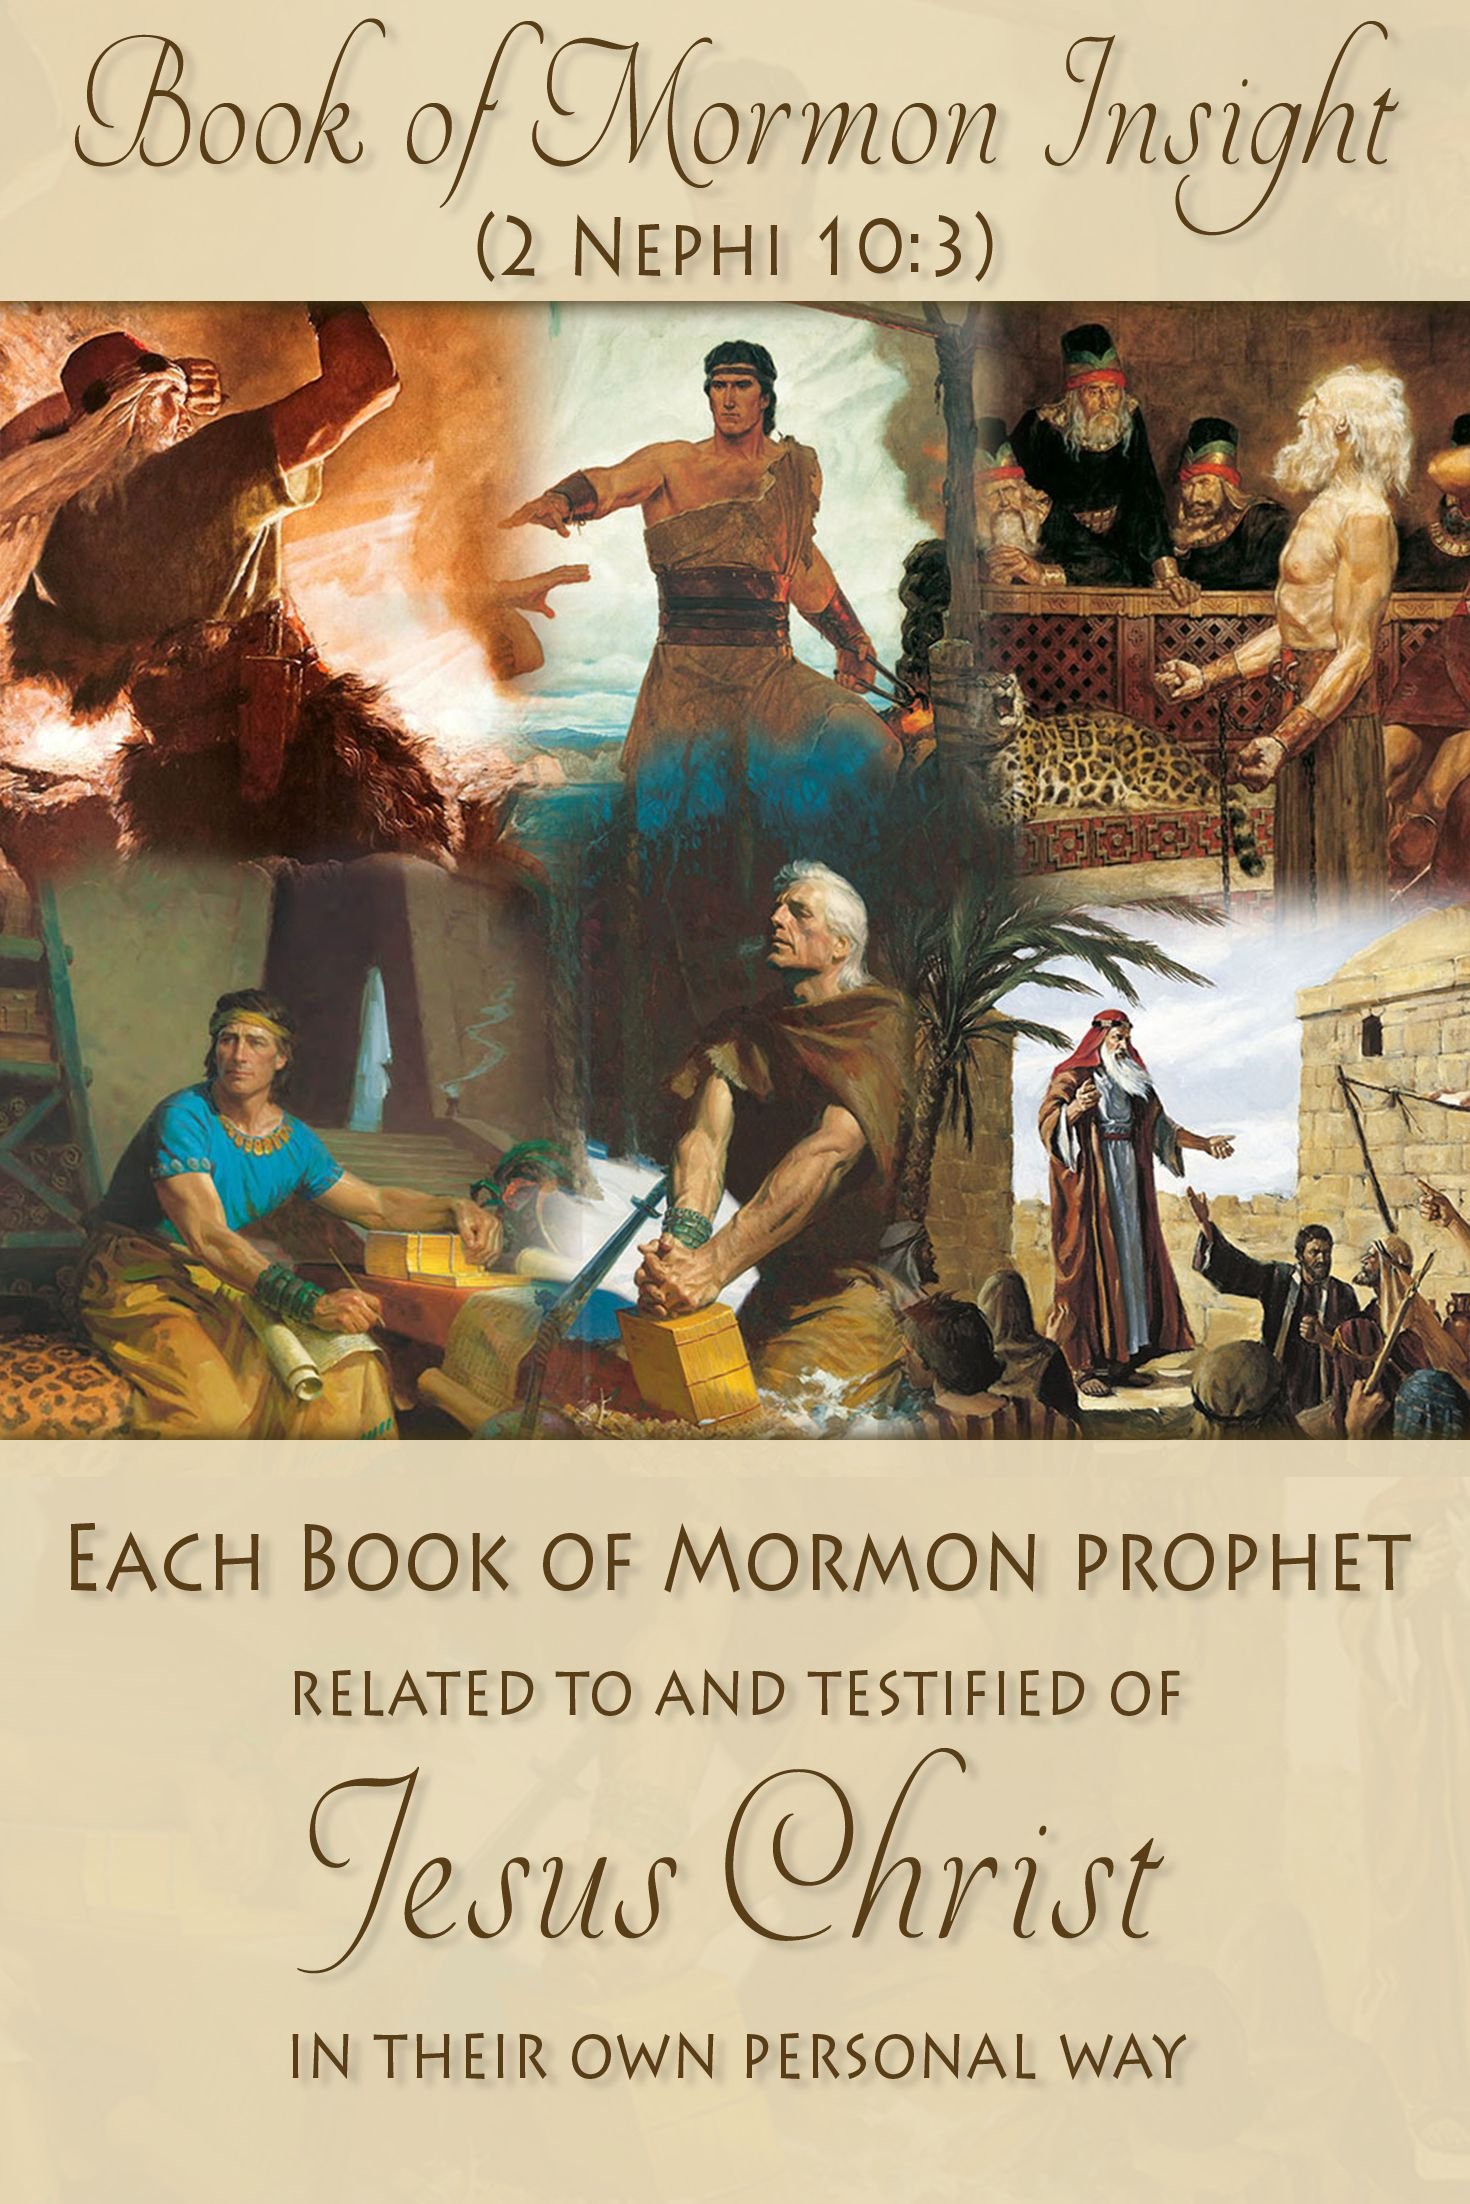 The prophets in the Book of Mormon each referred to Christ differently based off their own individual experiences. Lehi referred to Christ more as a Redeemer, whereas Jacob referred to him more as the Anointed One. Learn how this is supporting different authors of the Book of Mormon at http://www.knowhy.bookofmormoncentral.org/content/why-does-an-angel-reveal-the-name-of-christ-to-jacob #Knowhy #BookofMormon #LDS #Mormon #Christ #Jesus #JesusChrist #Lord